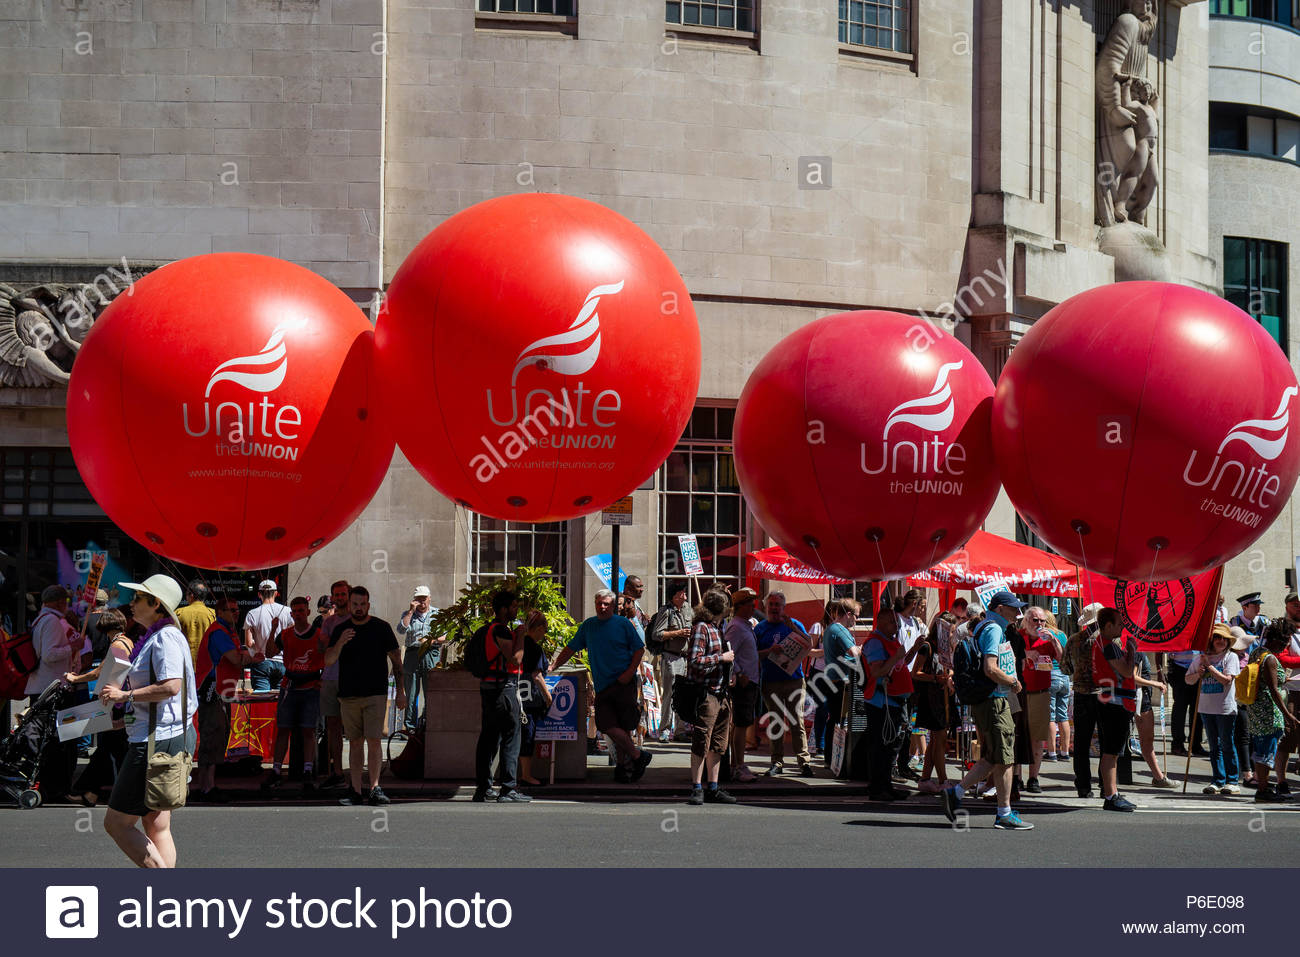 London, Great Britain, 30 Jun 2018 A mixture of celebration and demonstration for the thousands of attendees. Celebrating the 70th Birthday of the NHS, and demonstrating to keep it properly funded and free for everyone.  Credit: David Nash/Alamy Live News - Stock Image